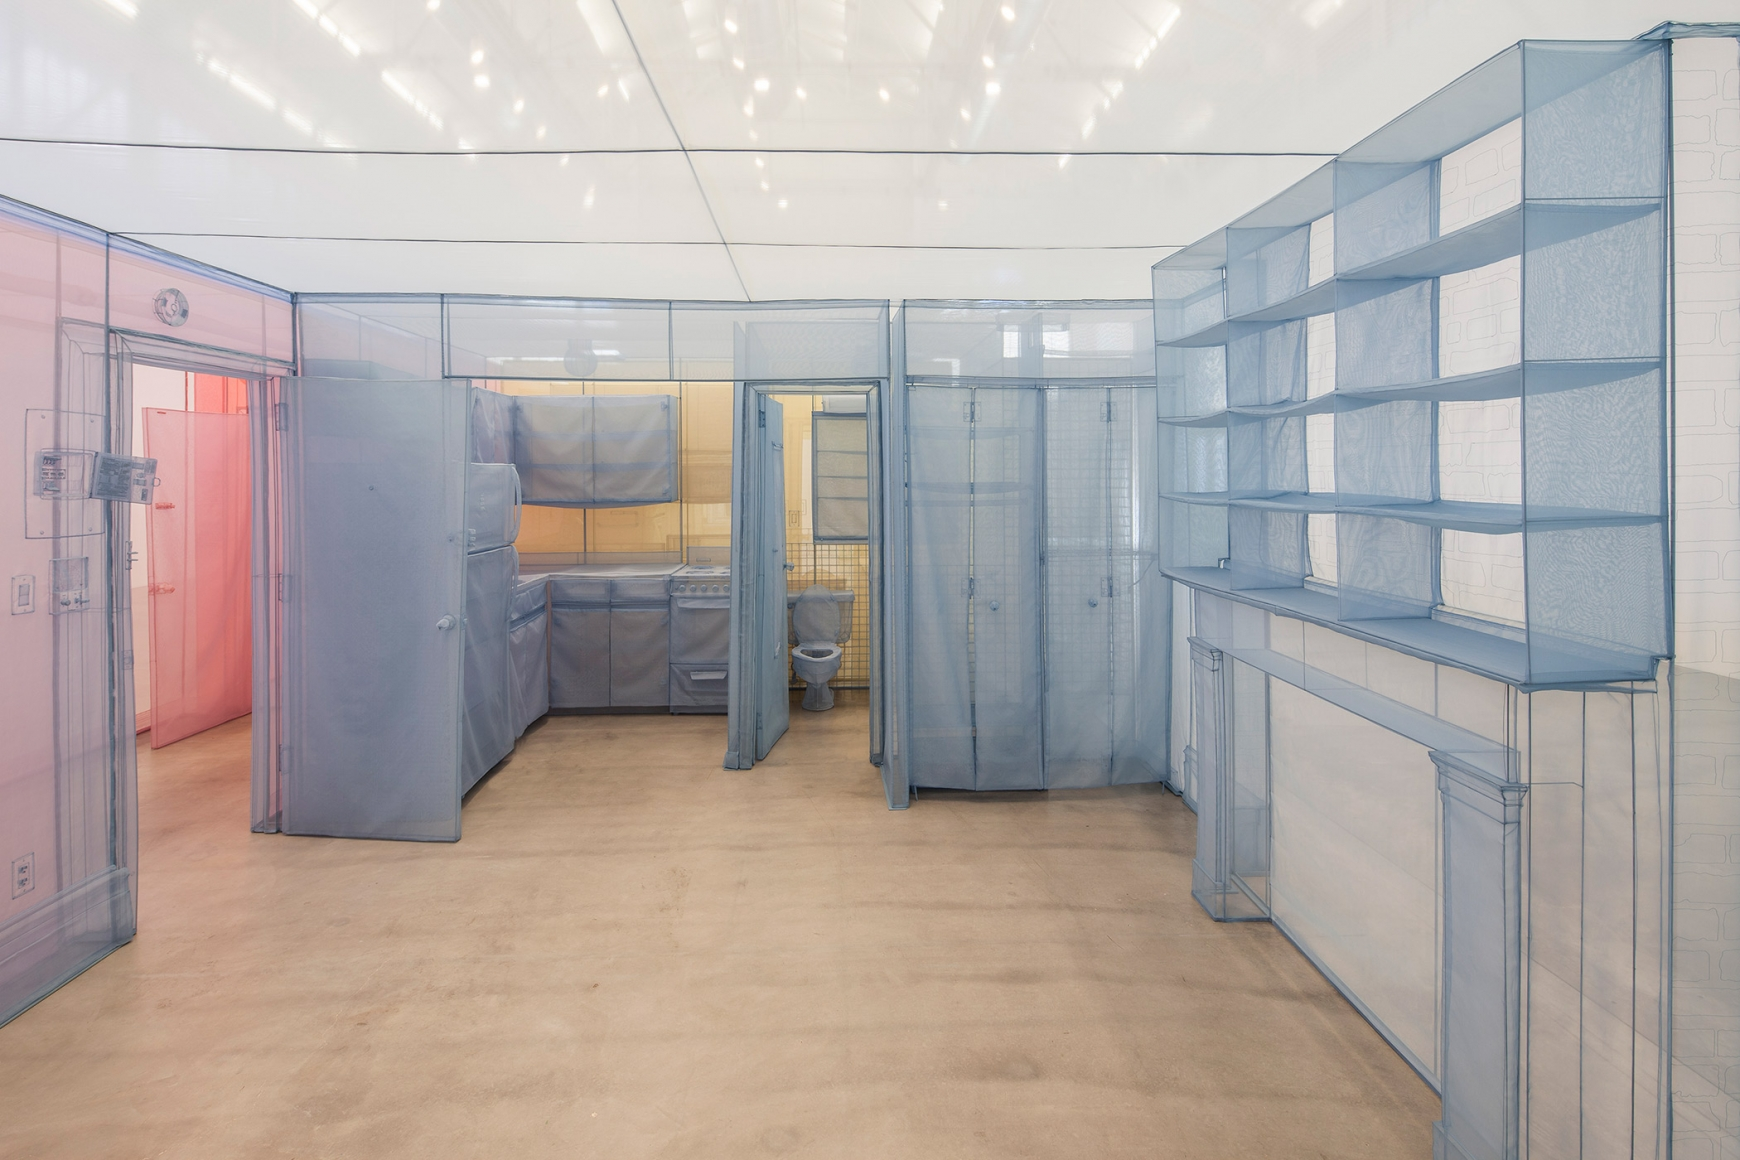 DO HO SUH, Apartment A, Unit 2, Corridor, and Staircase, 348 West 22nd Street, New York, NY 10011, USA